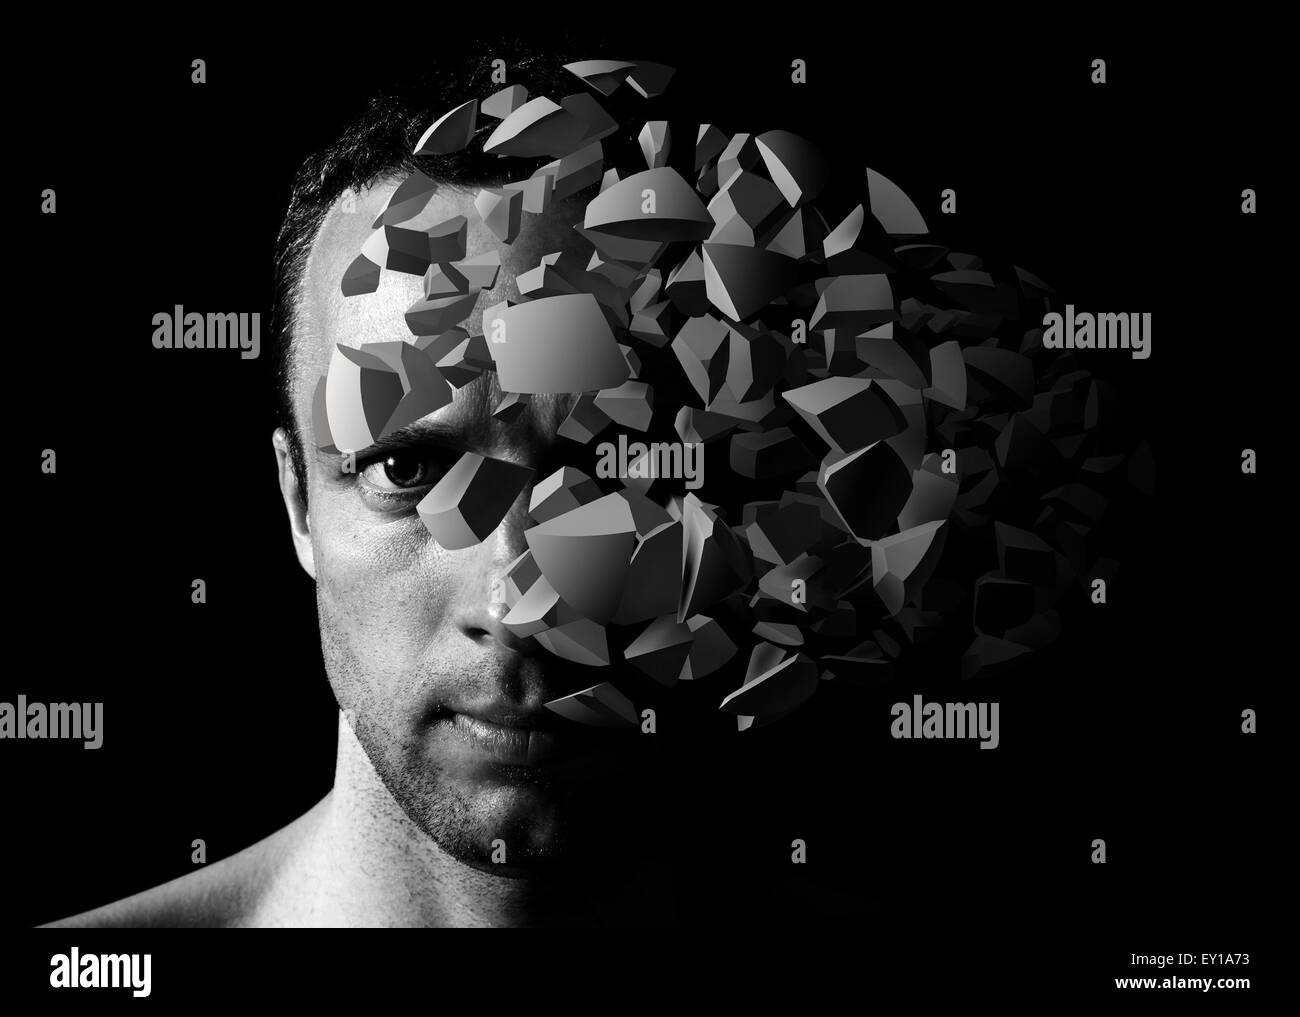 Caucasian young man creative portrait with 3d explosion fragments on black background - Stock Image